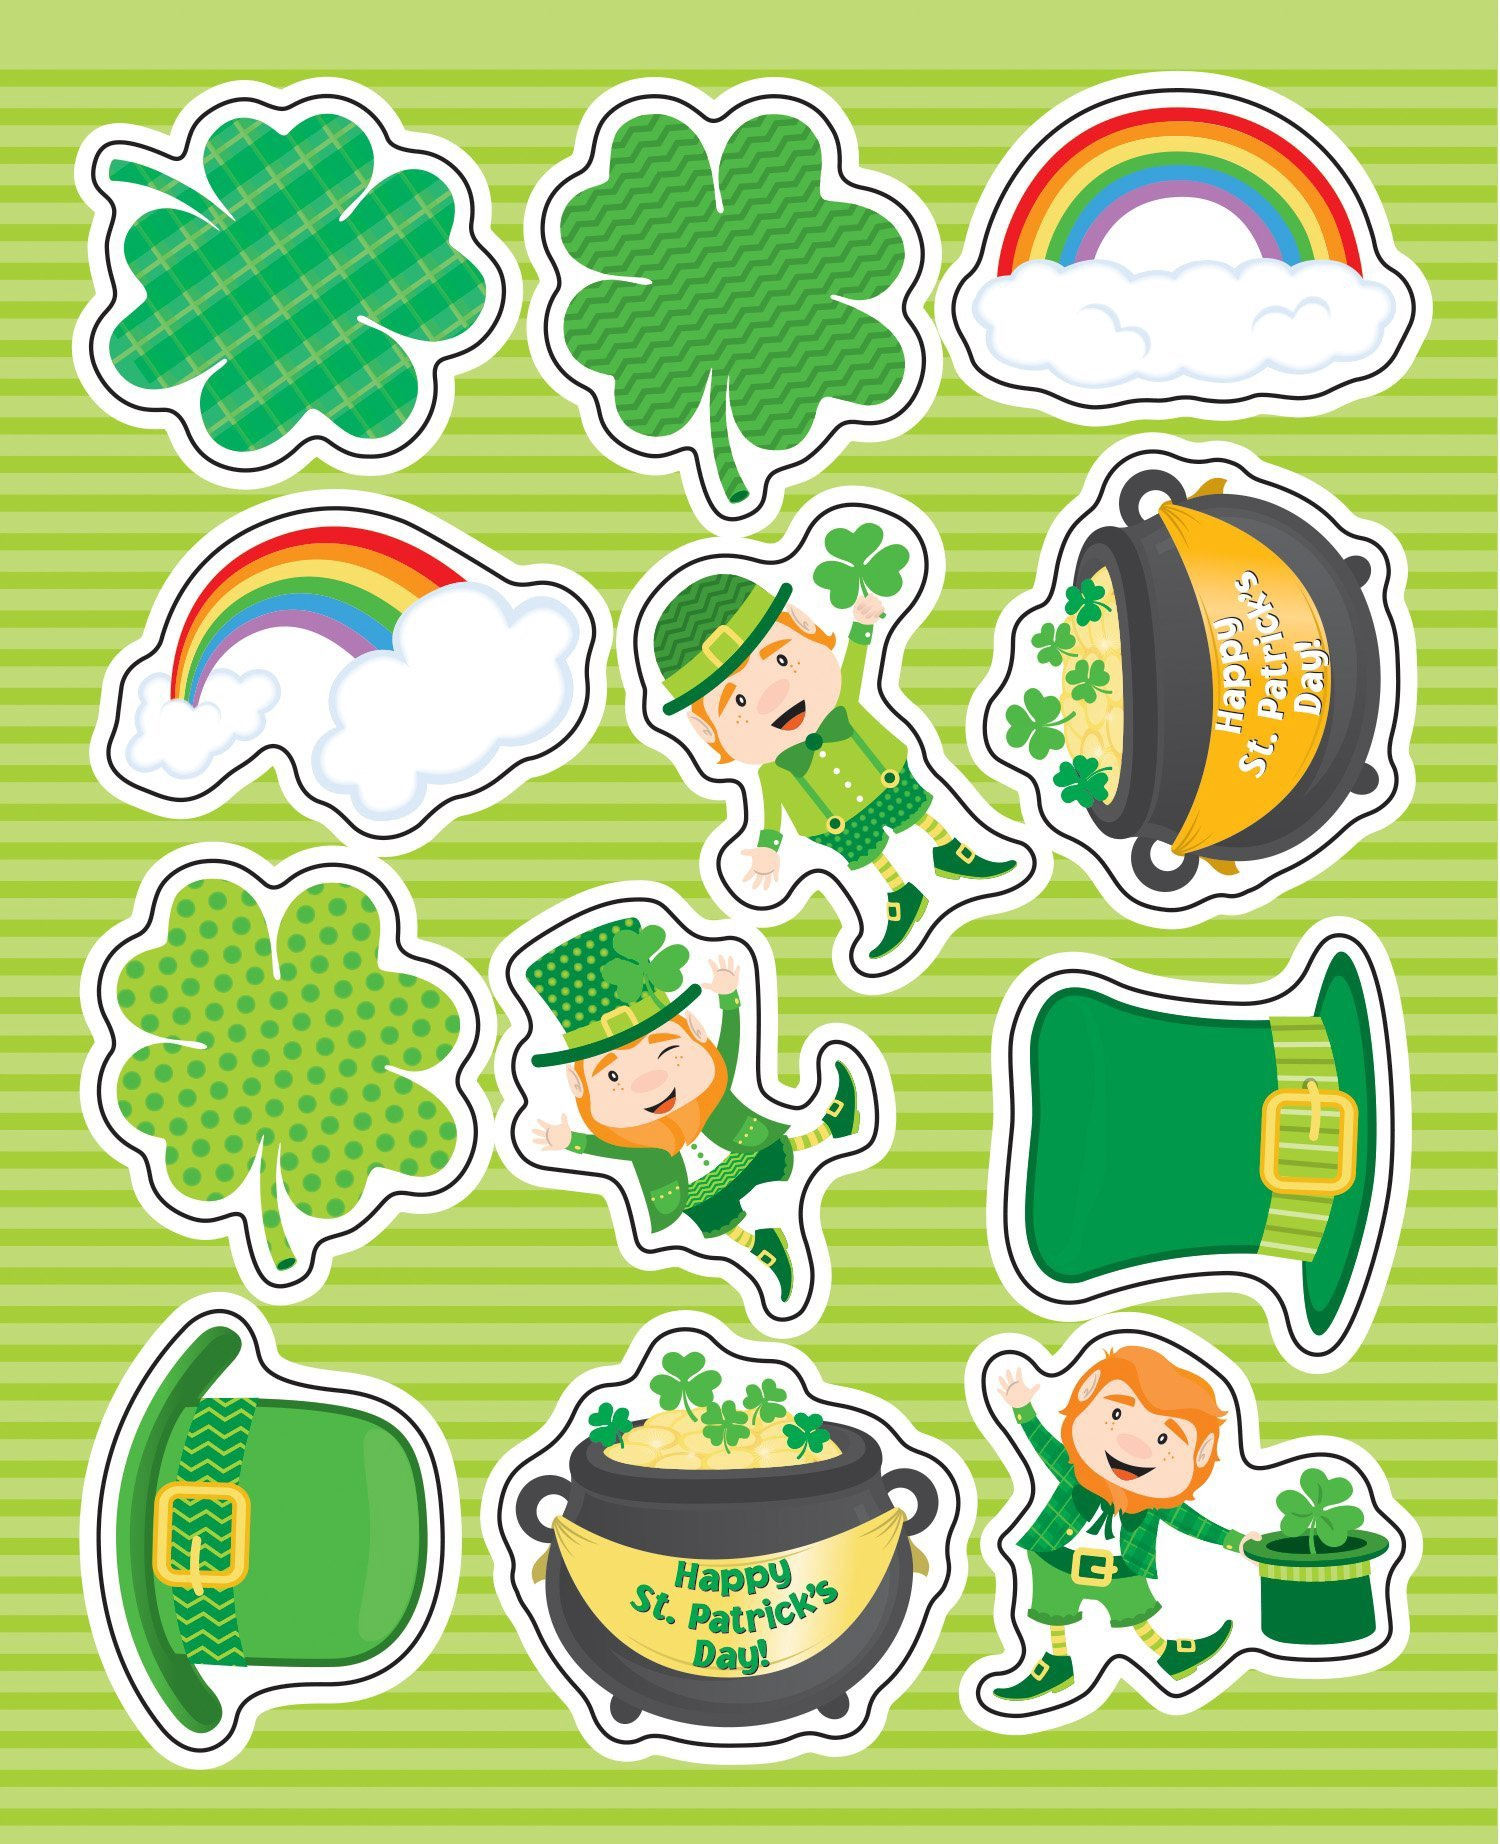 CD 168224 ST. PATRICK'S DAY STICKERS